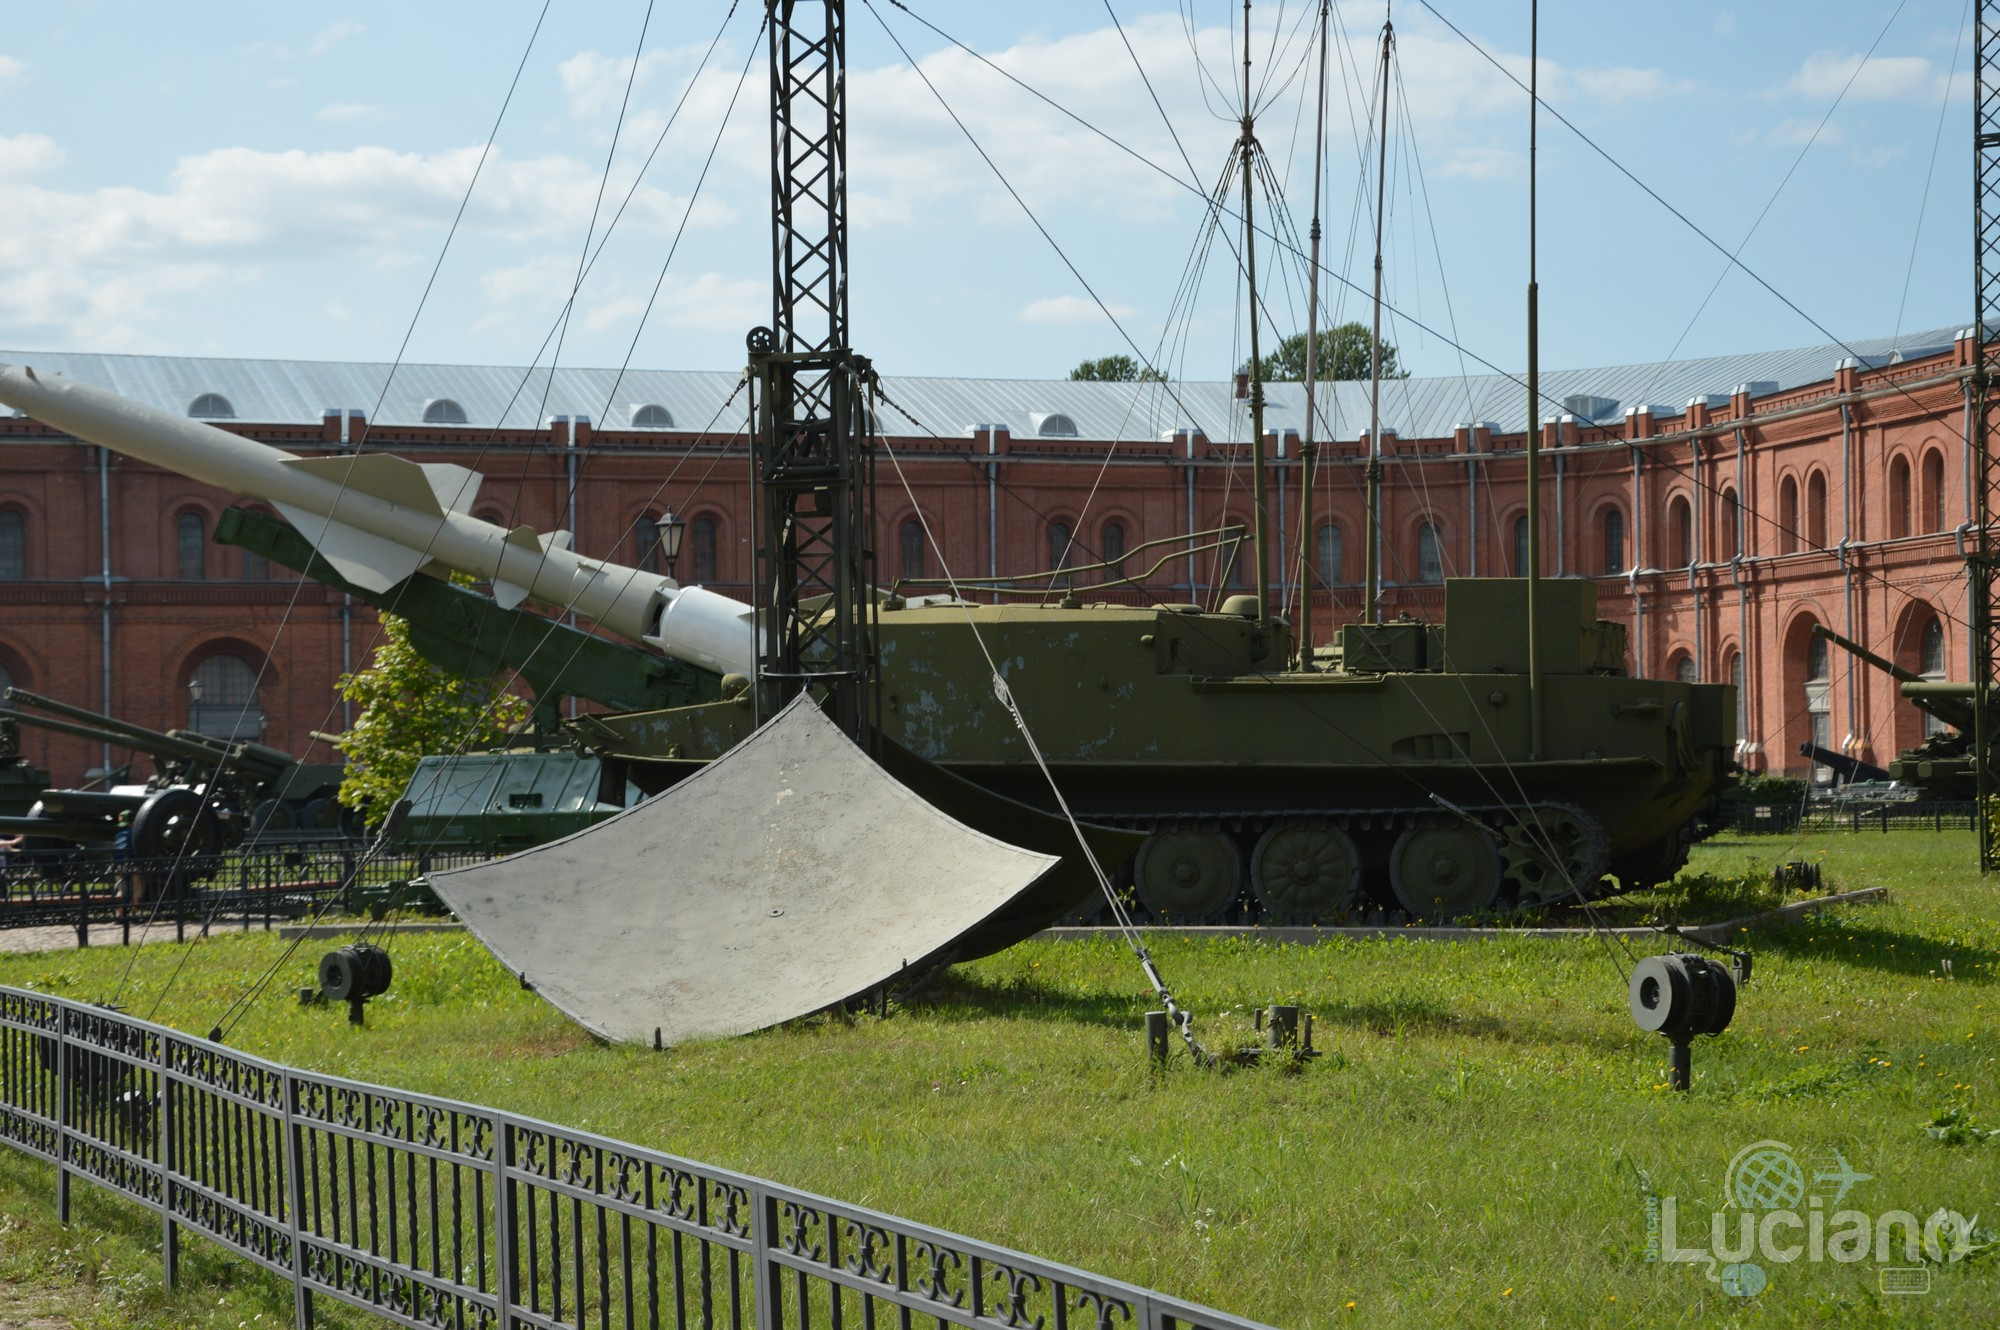 Military-Historical-Museum-of-Artillery-Engineer-and-Signal-Corps-St-Petersburg-Russia-Luciano-Blancato- (48)